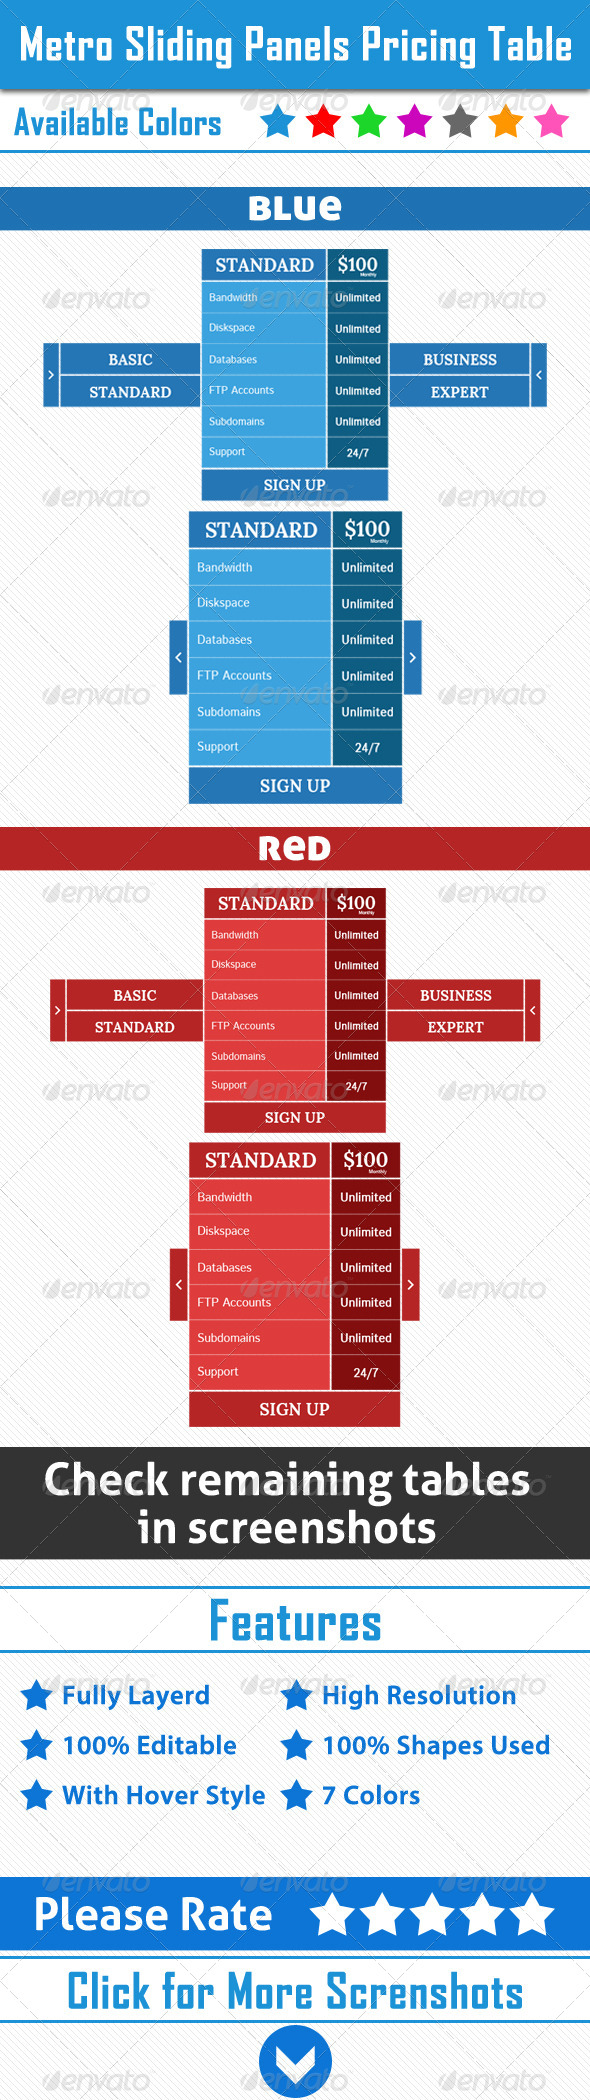 GraphicRiver Metro Sliding Panels Pricing Table 4839551